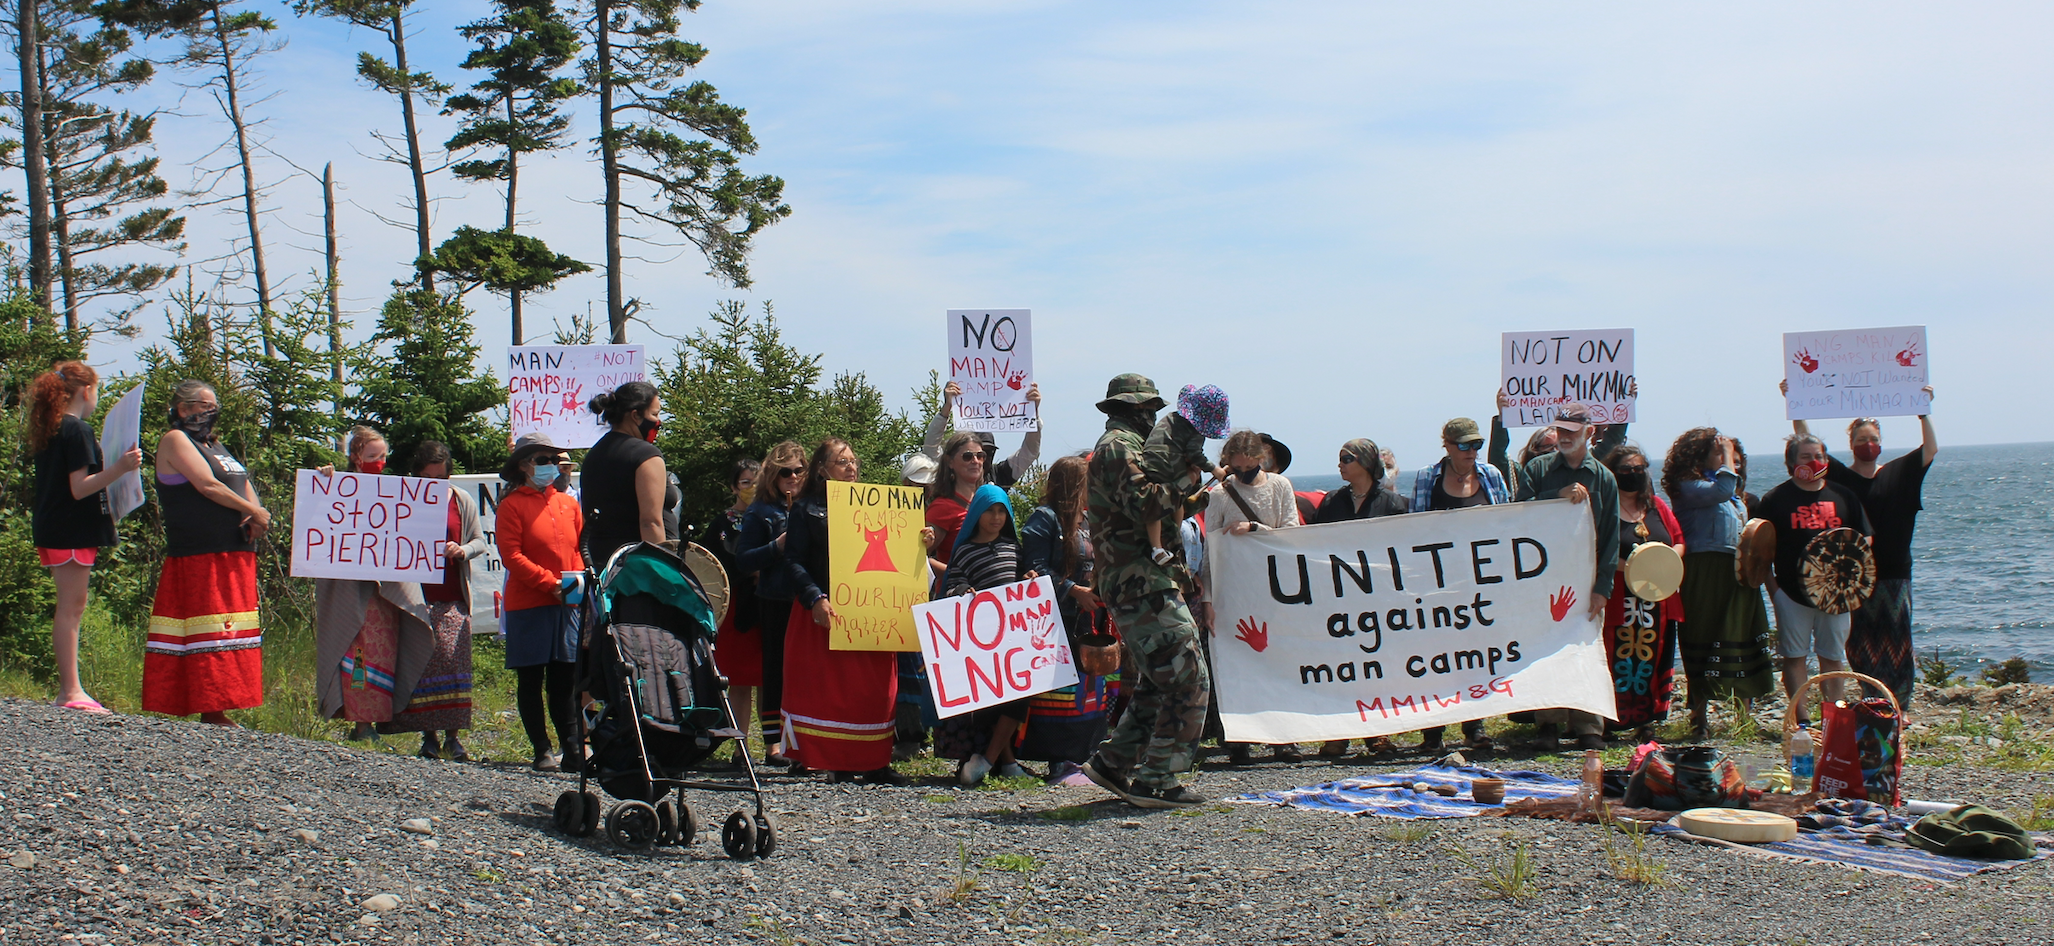 A sizable group of approximately 25 people at a protest, with the ocean in the background. Some are holding home made signs, many are wearing ribbon skirts, and there is a picnic blanket in the foreground with drums and other objects on it.